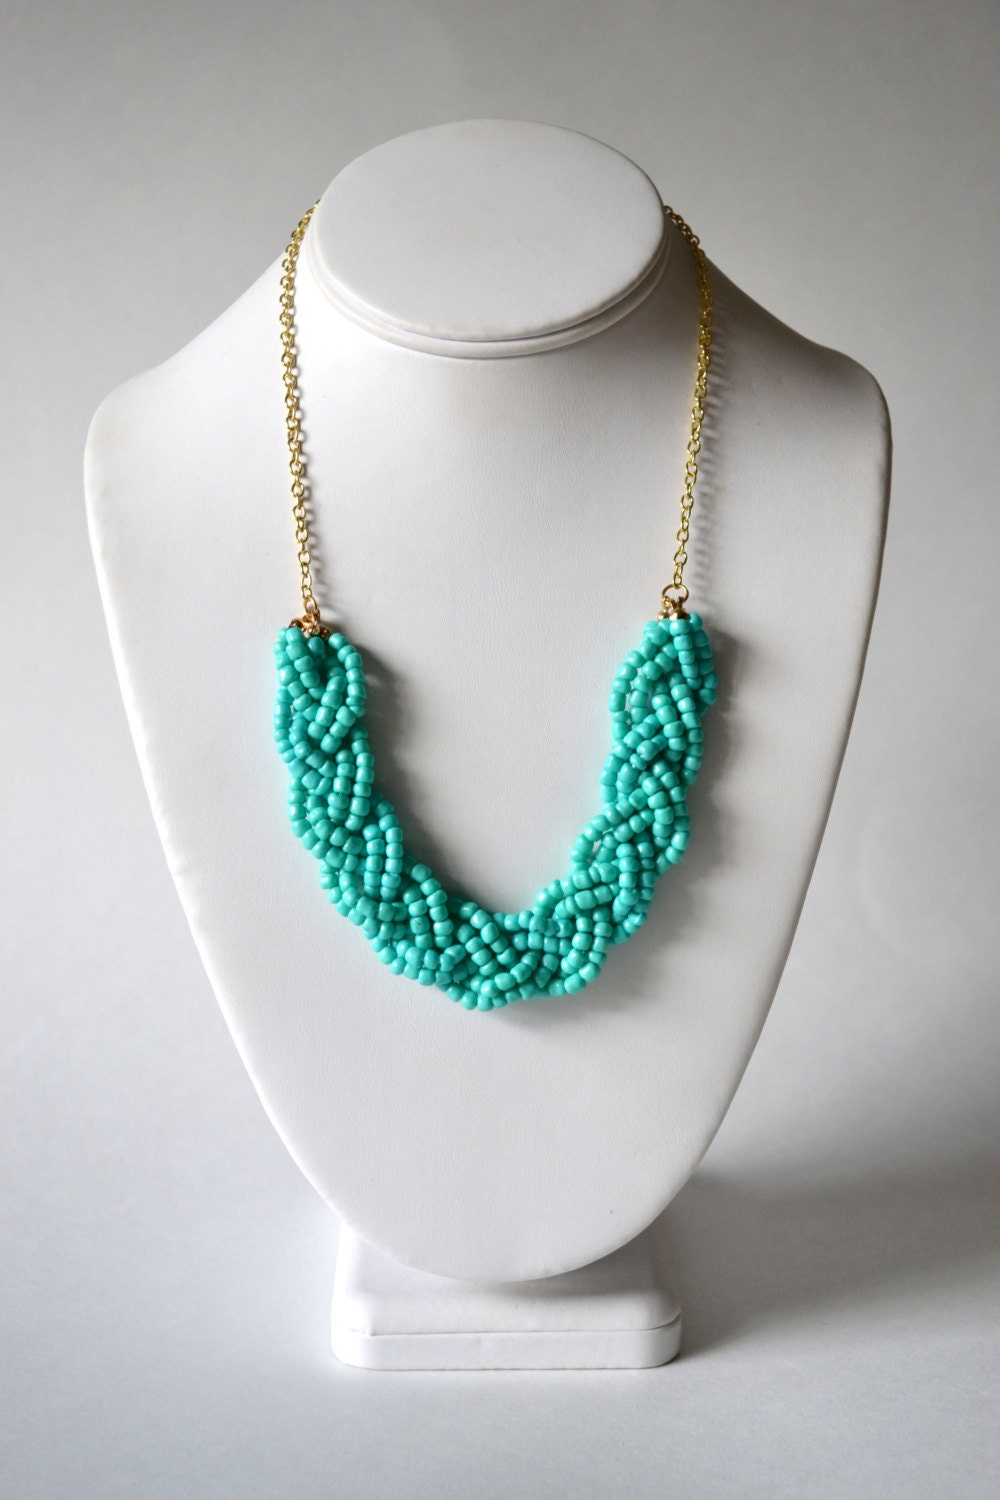 Teal Beaded Braid Statement Necklace Teal Necklace Teal